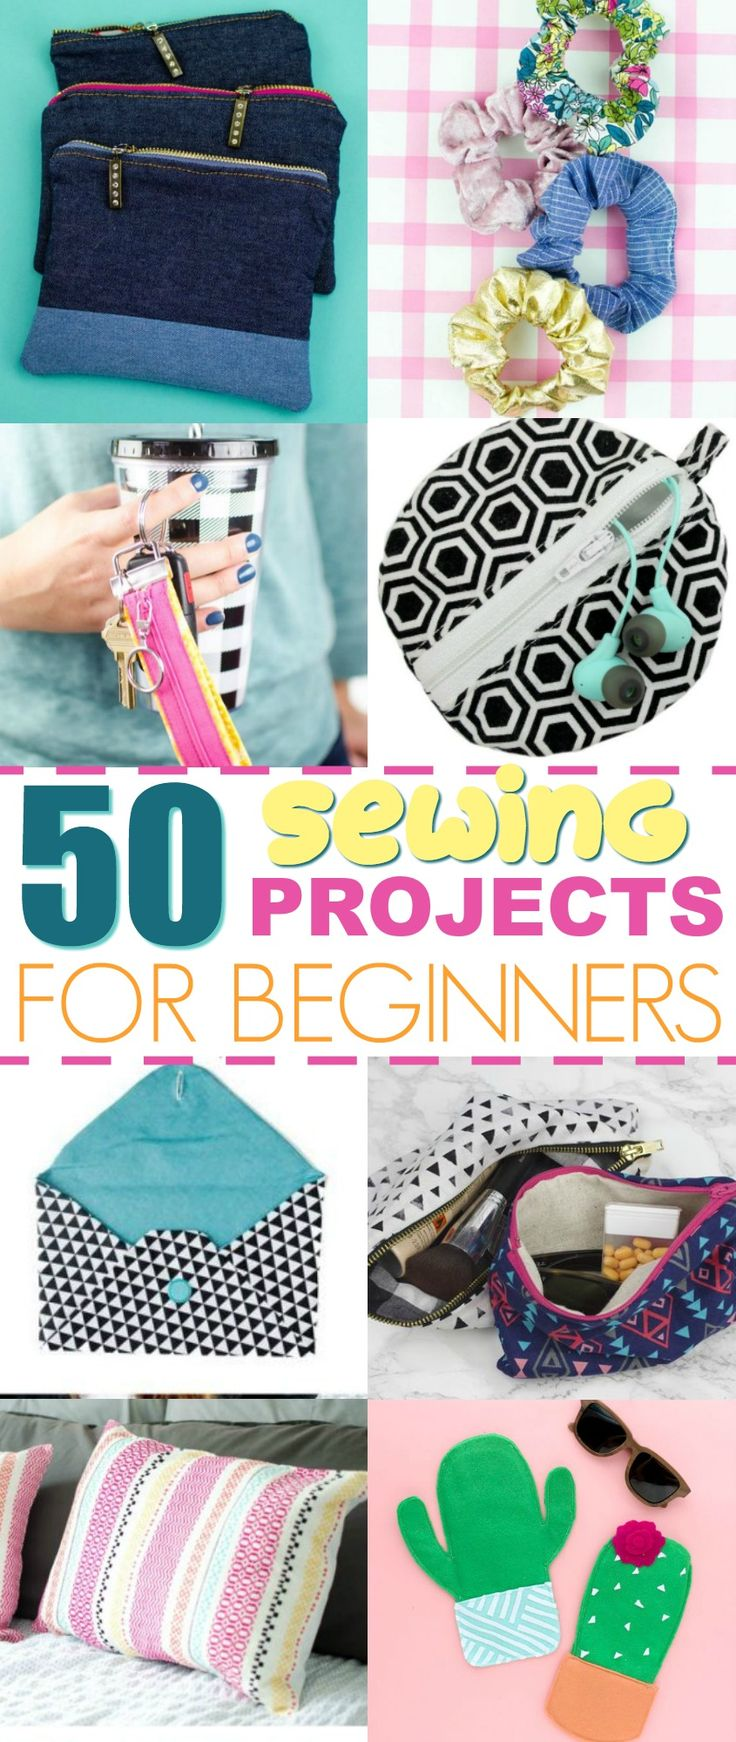 You'll love how cute and easy these sewing projects are to whip up! So many br...